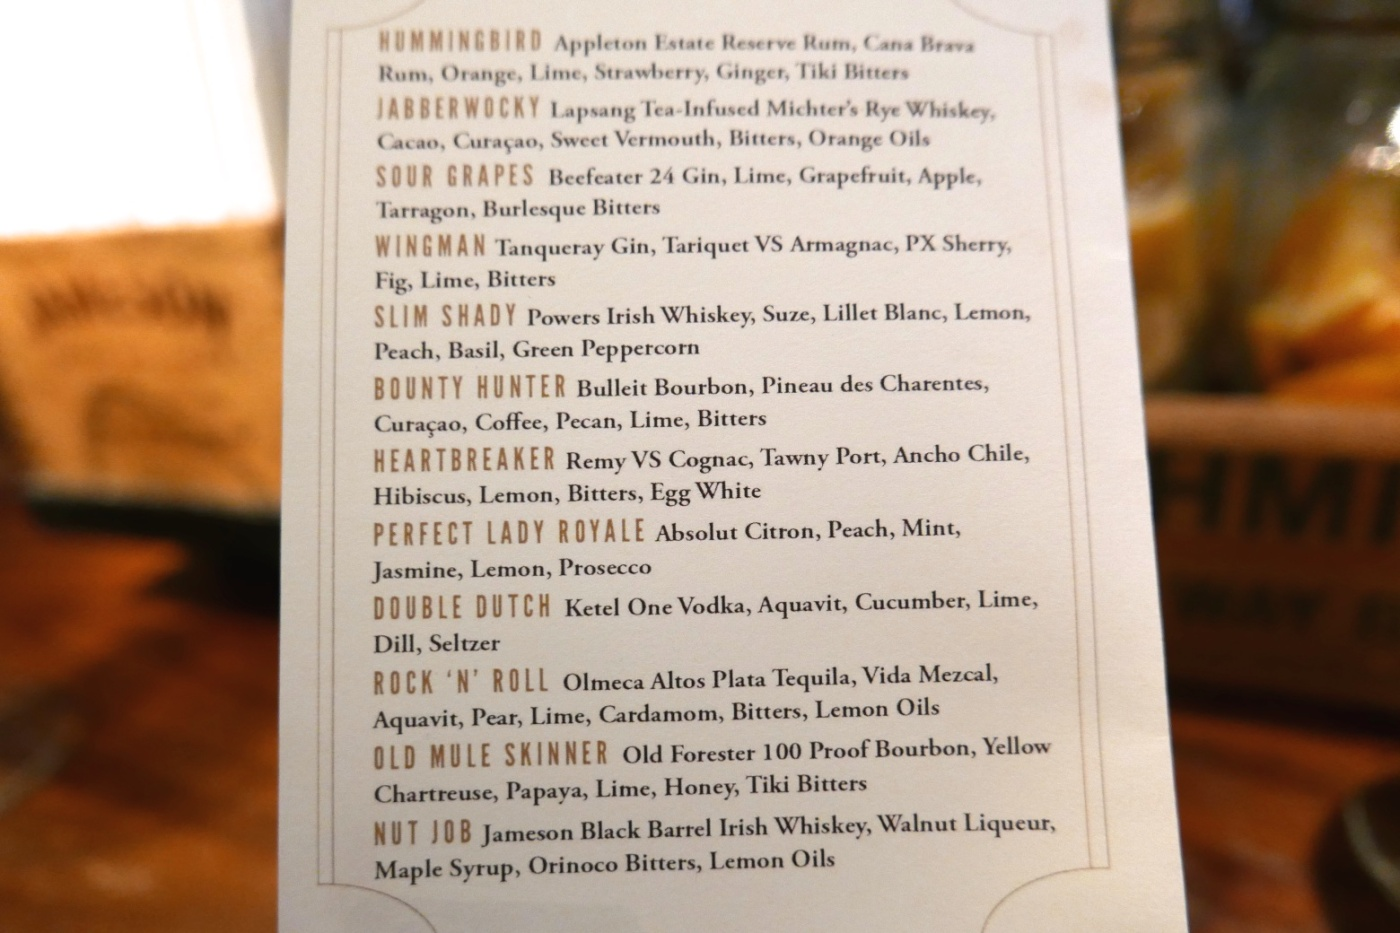 Cocktails at Dead Rabbit Taproom